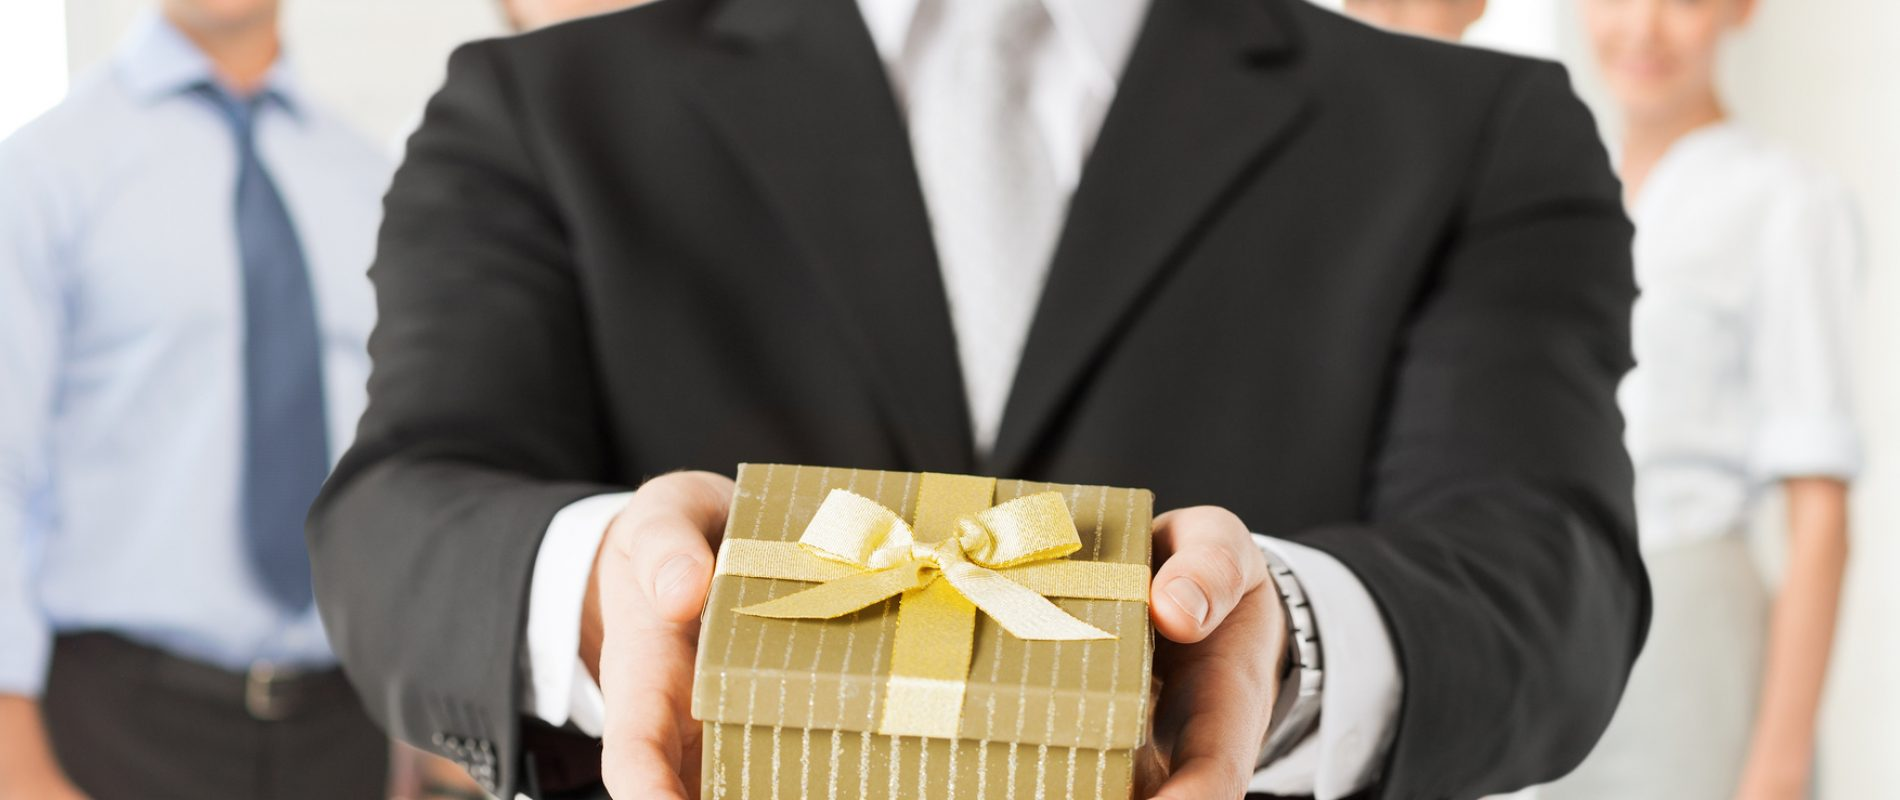 corporate-gifts-for-the-holidays.jpg